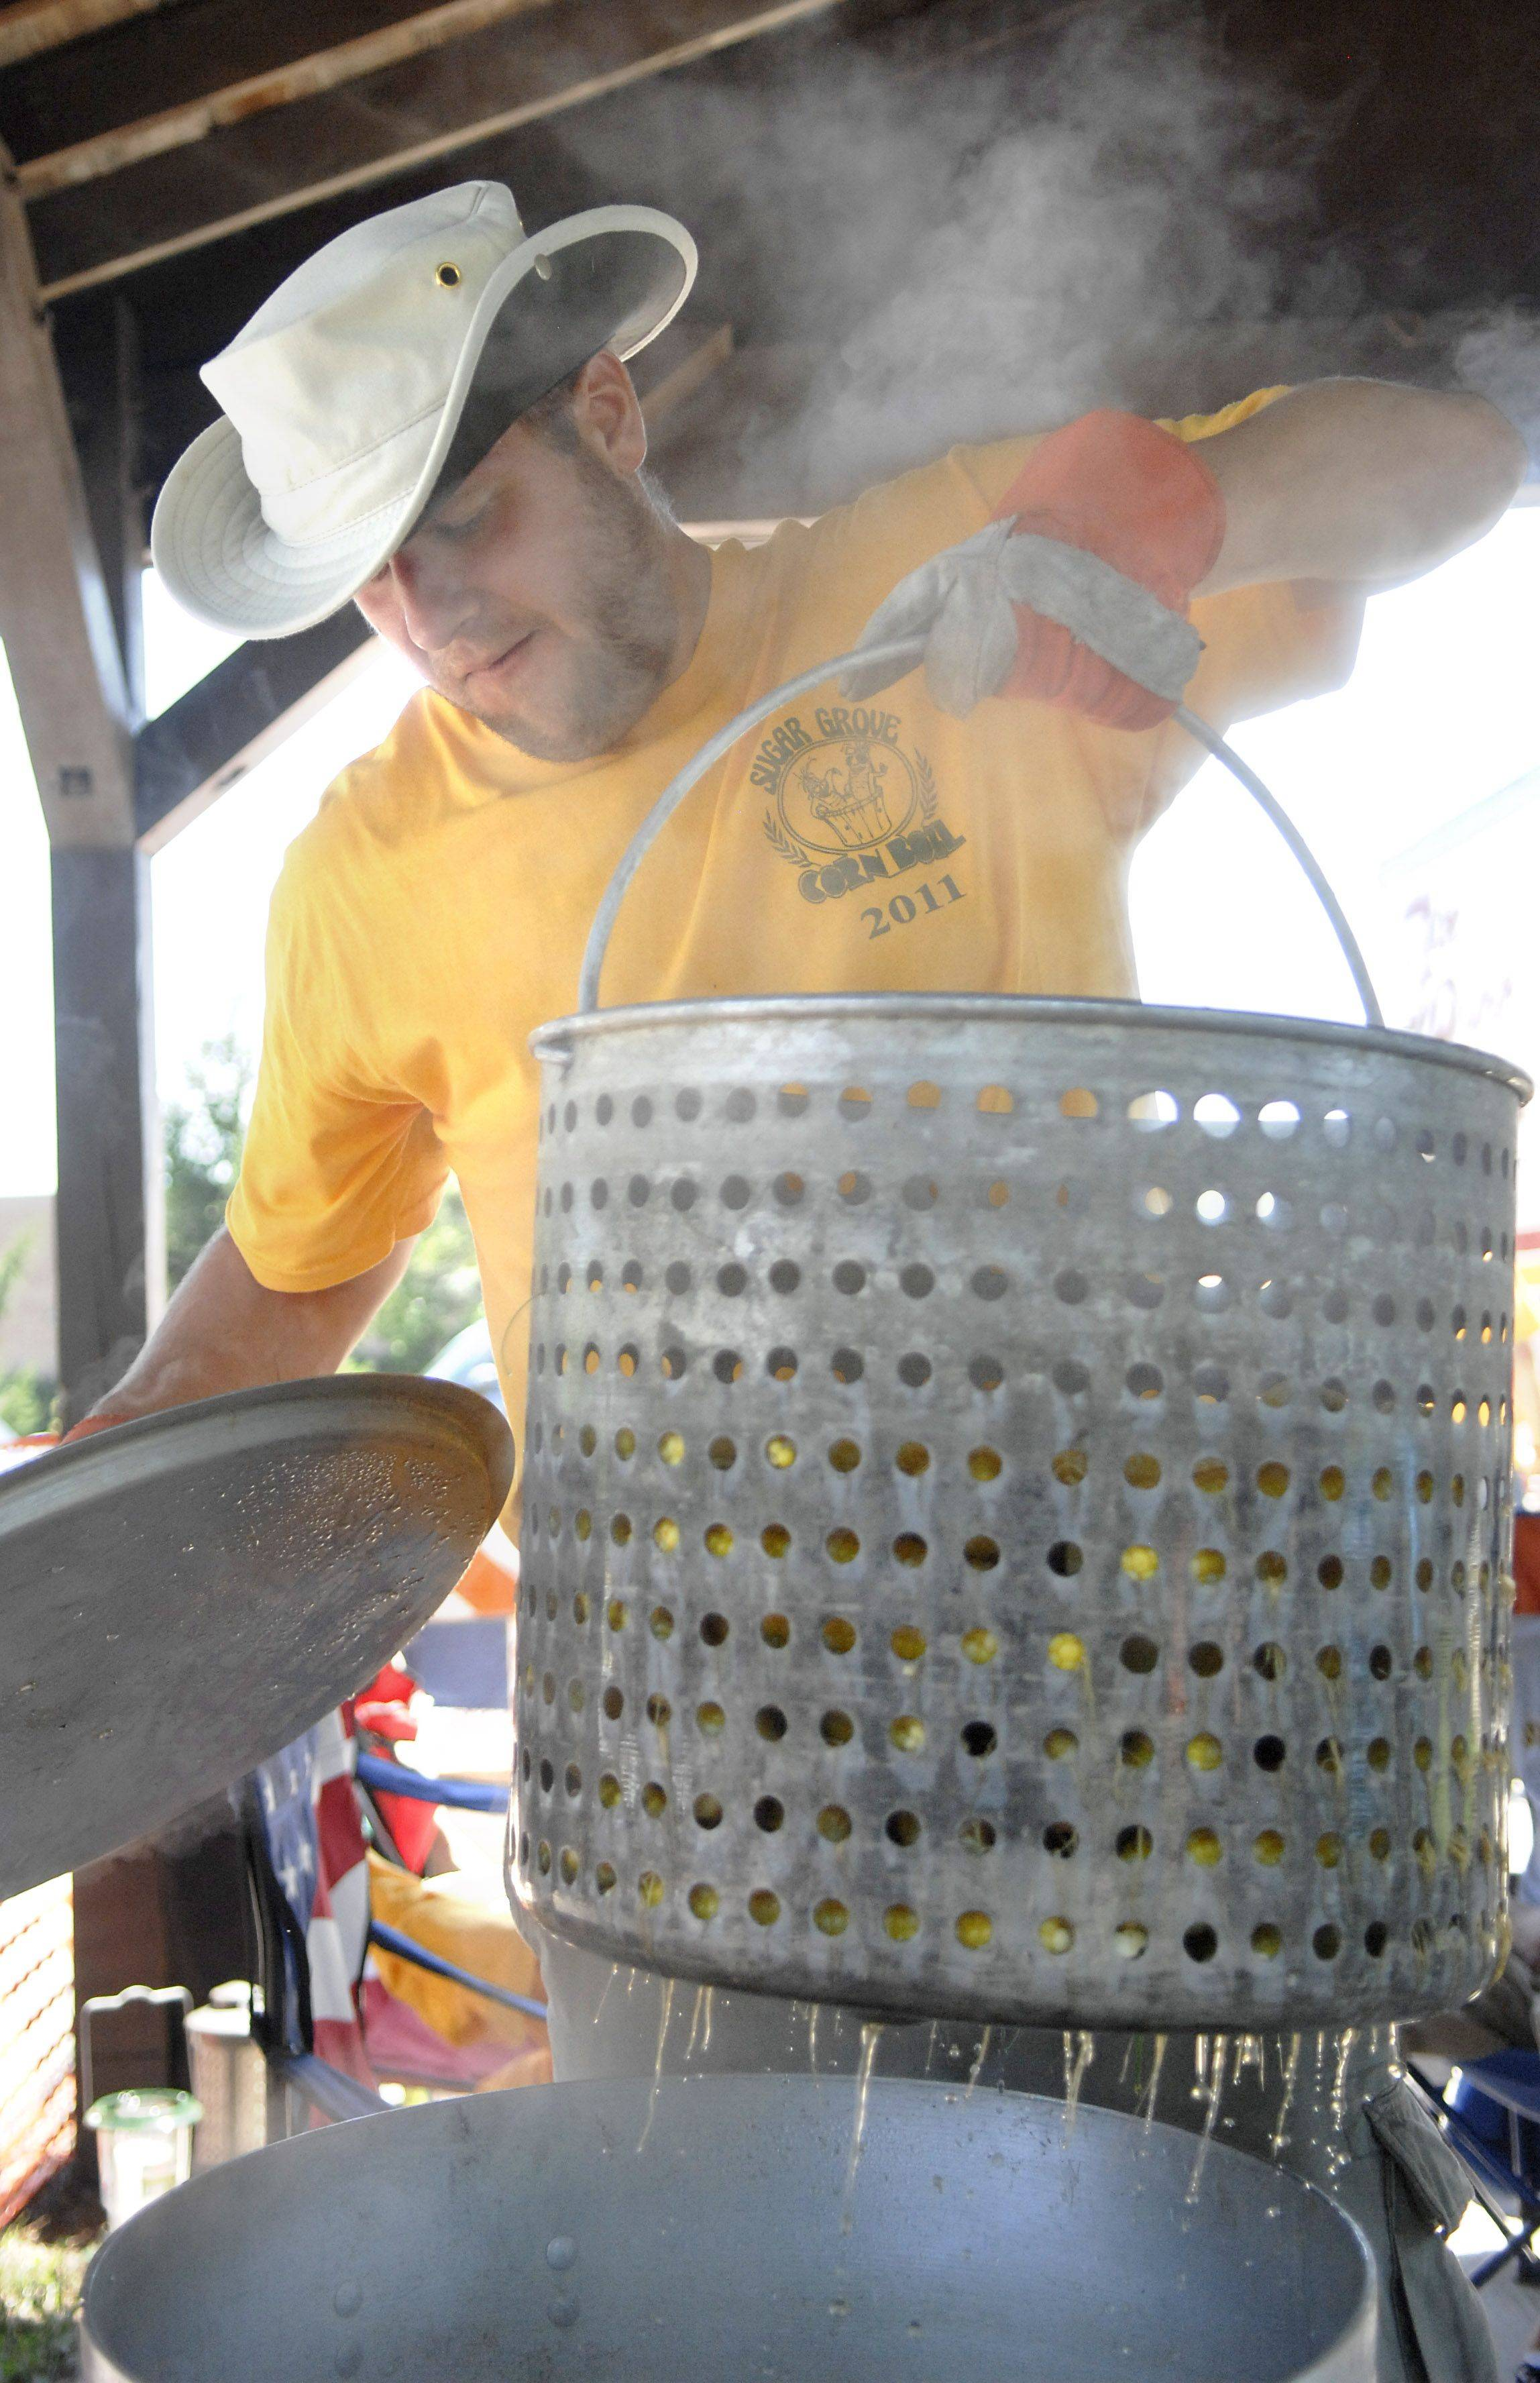 Sugar Grove Corn Boil raises $9,400 for local charities